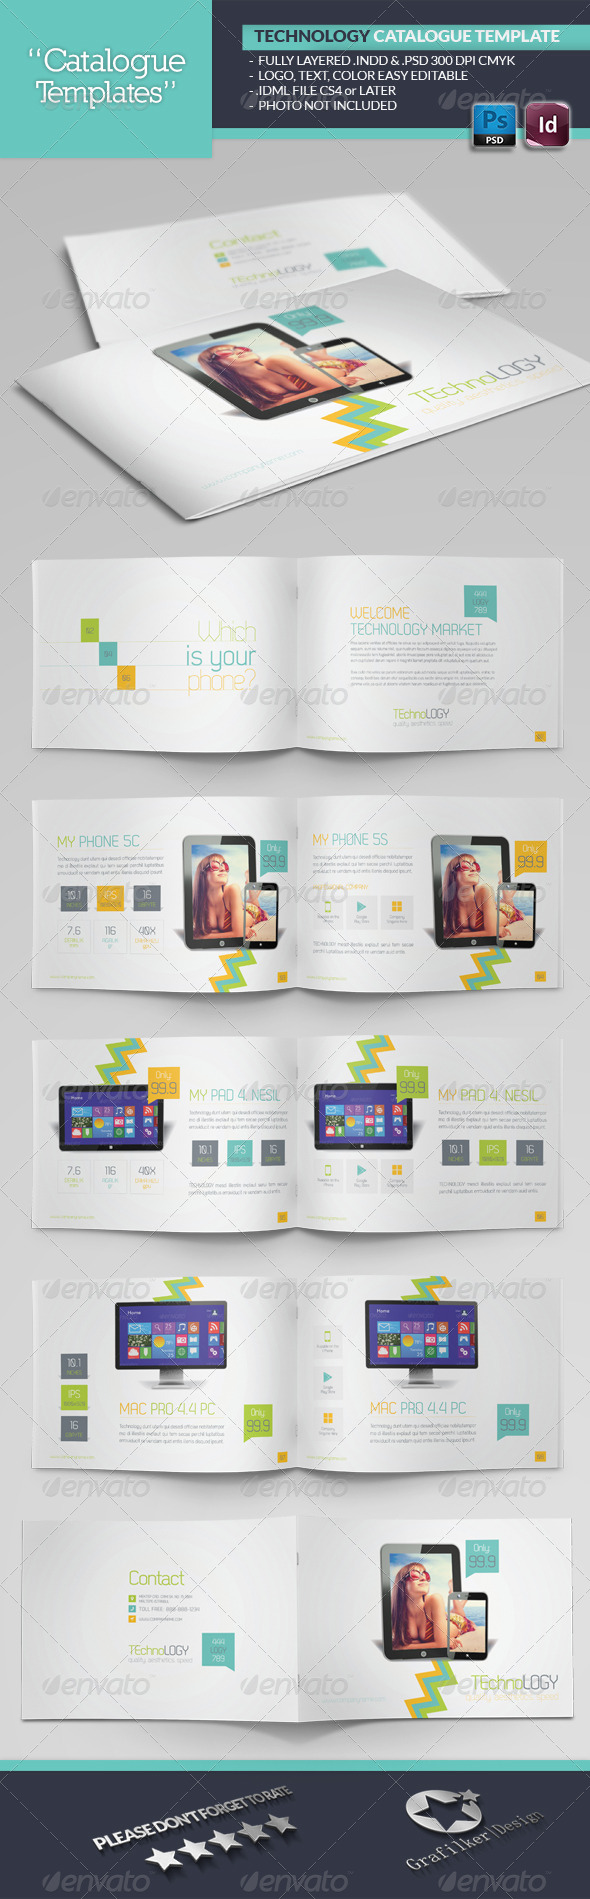 GraphicRiver Tecnology Catalogue Template 6589389